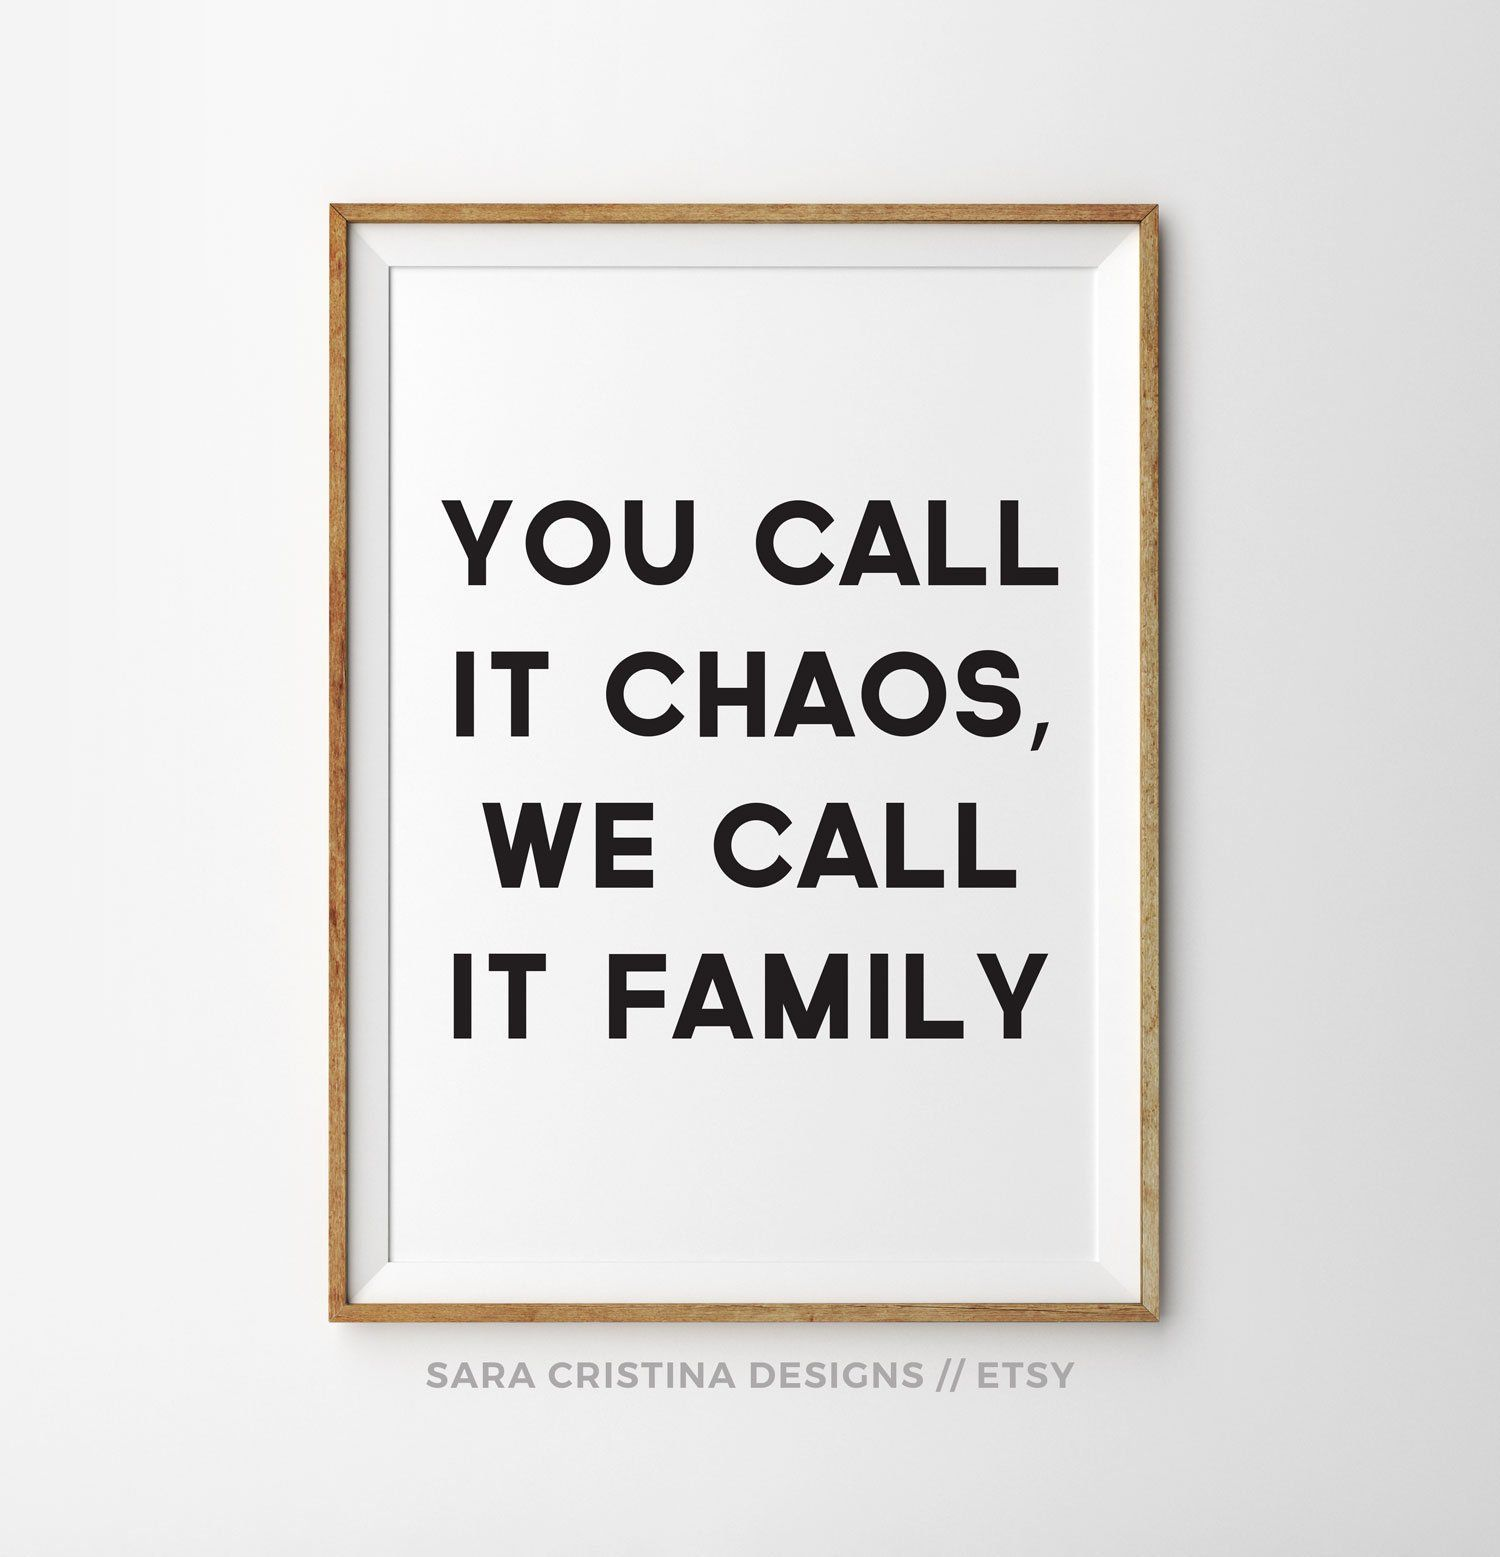 Education Quotes Family Quotes Big Family Quotes Family Quotes And Sayings Life Lessons Lit In 2020 Family Quotes Funny Home Quotes And Sayings Big Family Quotes